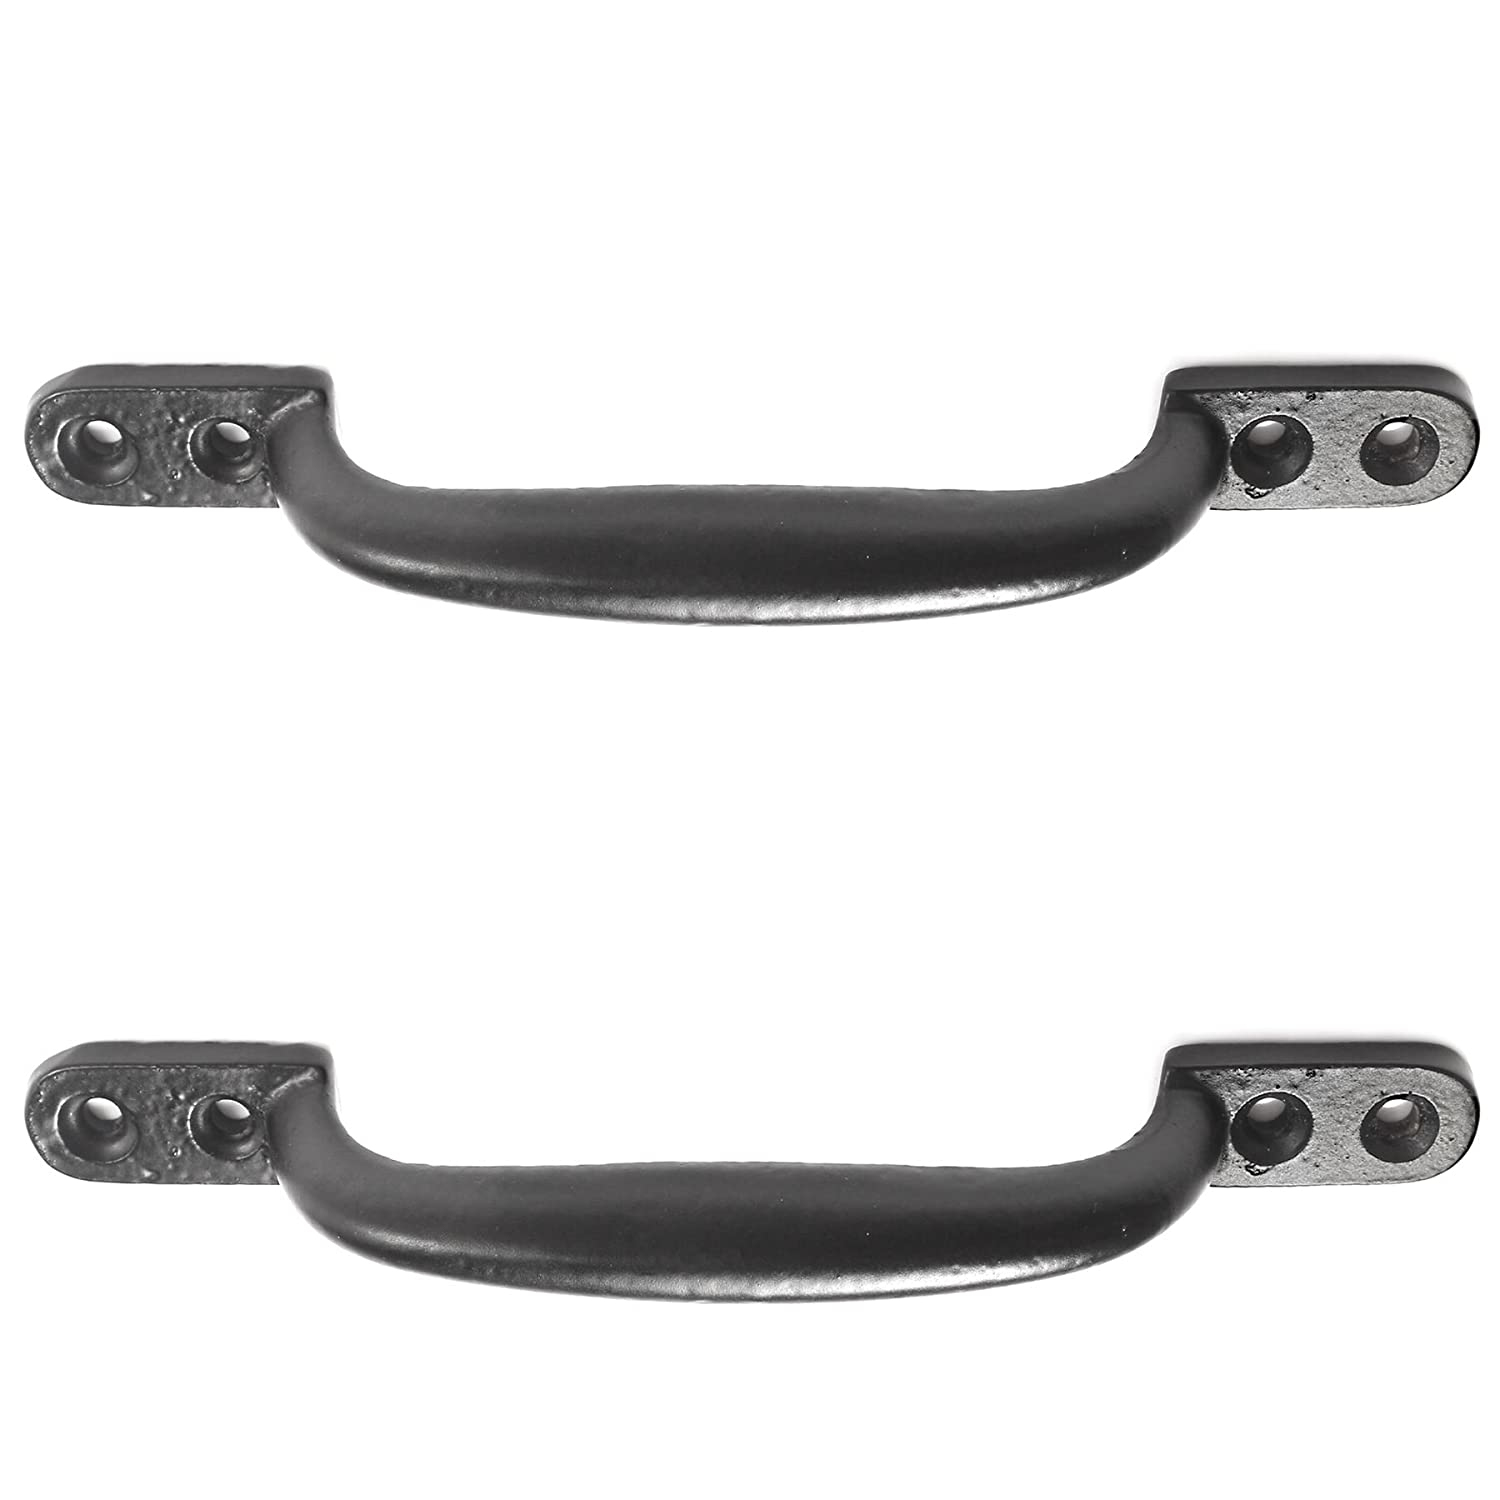 2x Black Cast Iron 6'/150mm Hot Bed Handles + Screws - Door/Shed/Garden Gate D Pull Handles White Hinge